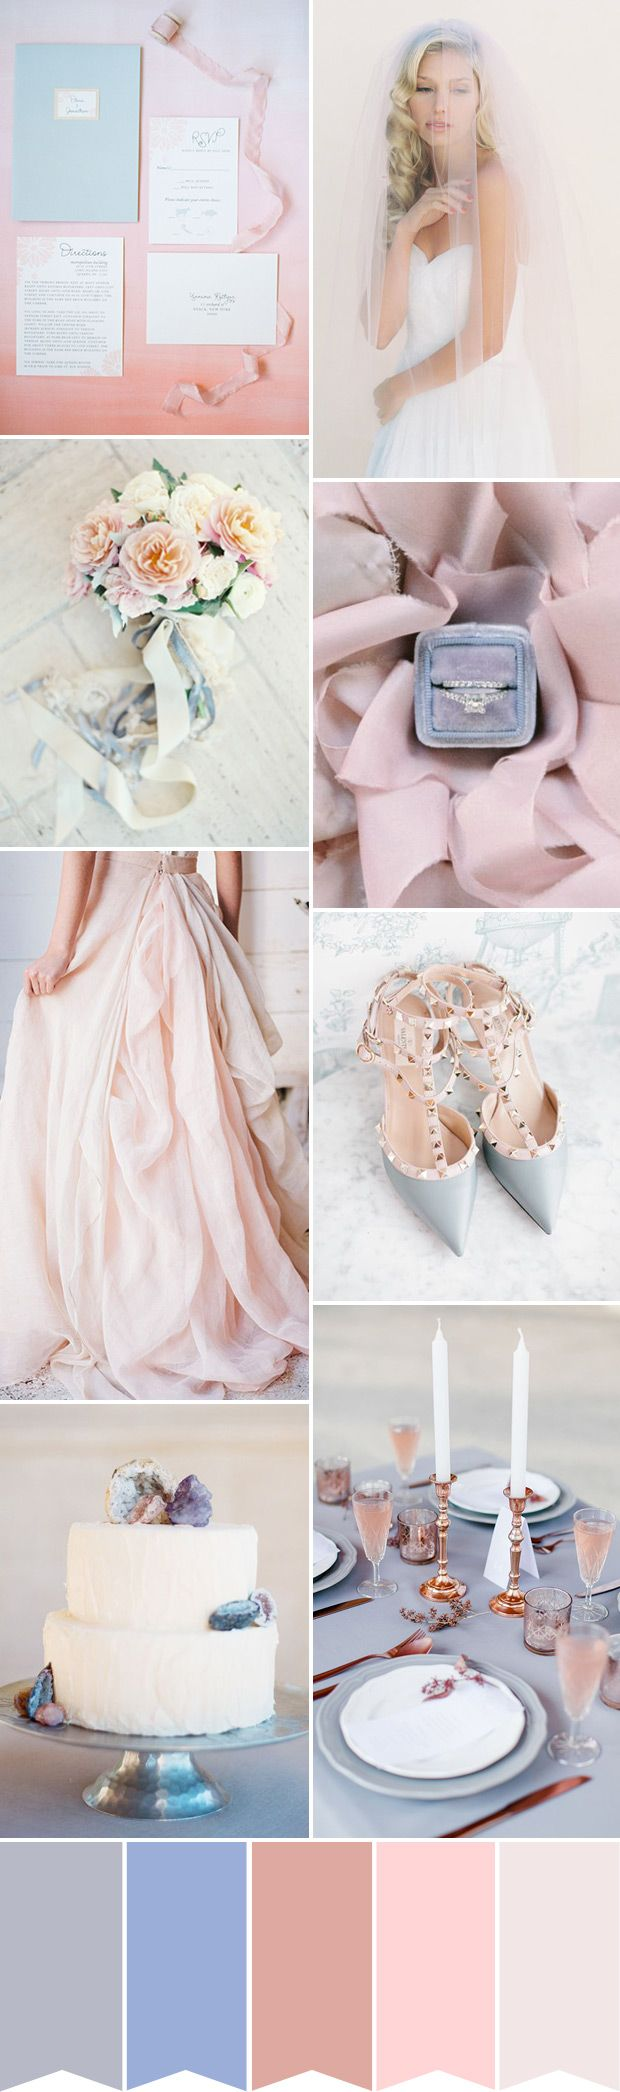 For the first time ever the official Pantone Color of the Year 2016 isn't just one, but a blending of two fantastic shades: rose quartz - a warm, romantic soft pink shade and serenity - a cool and light dusty blue. Reminiscent of a summer evening sky, these two shades are naturally so perfect for each other